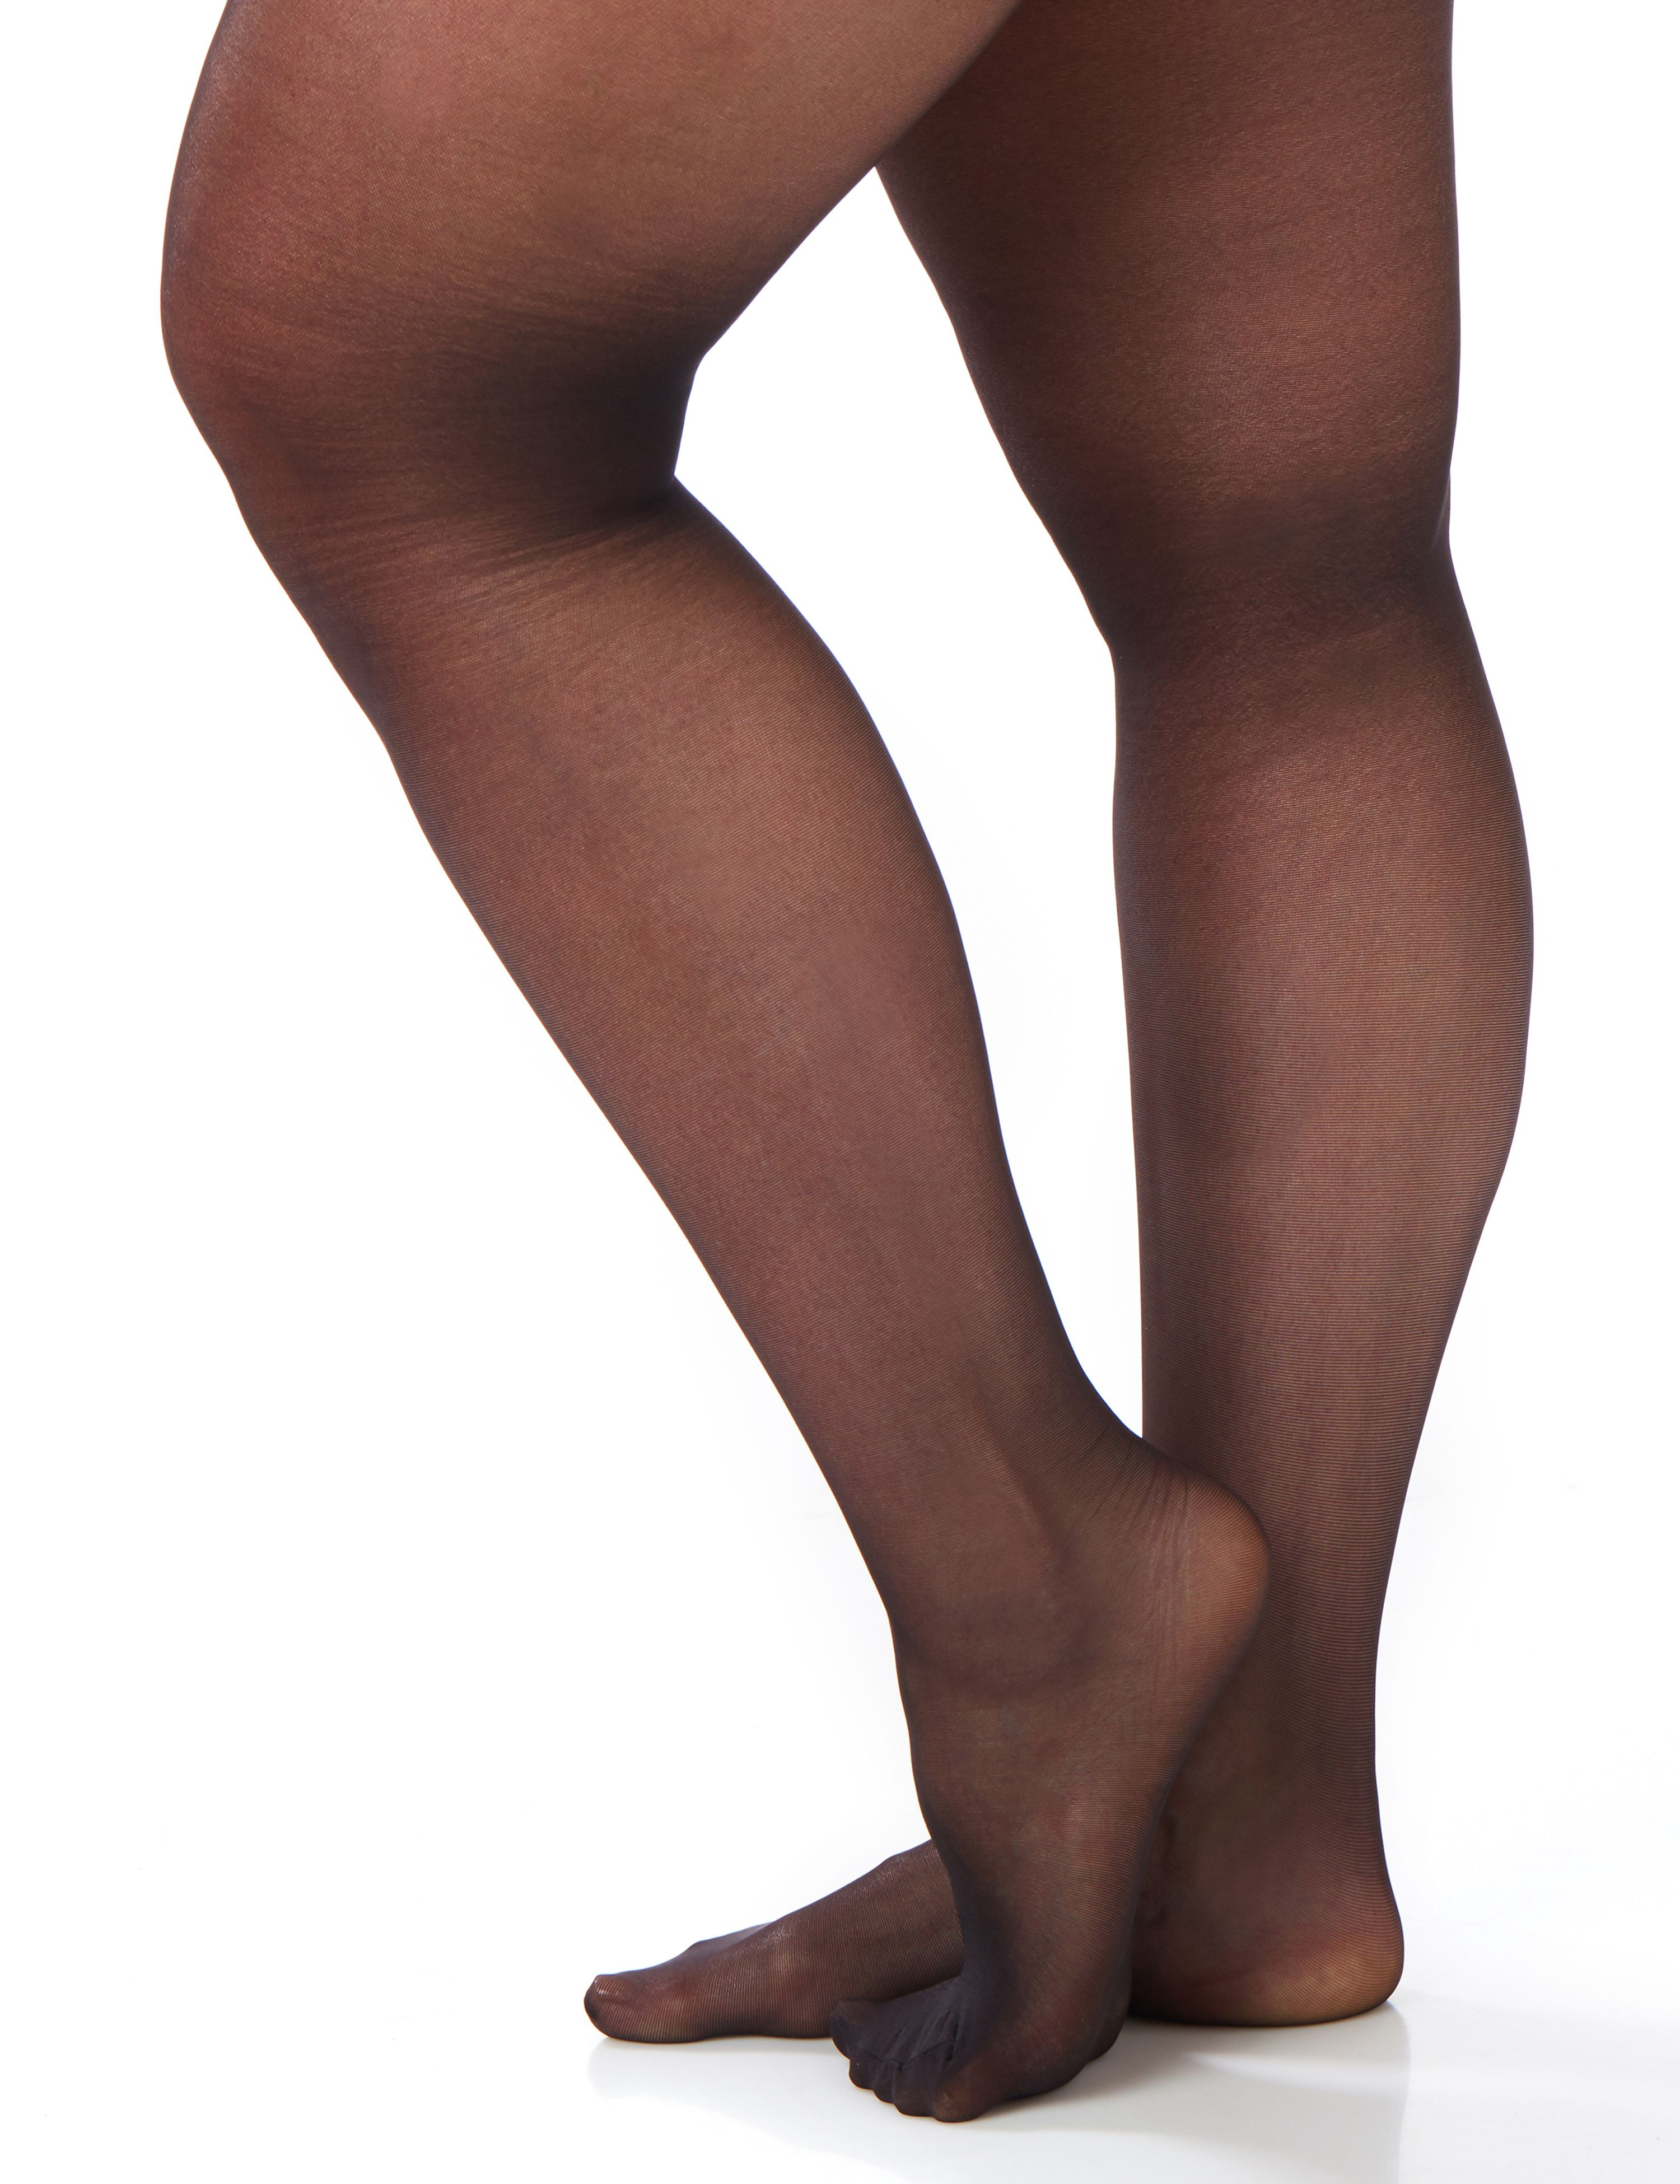 Light Support Pantyhose Light Support Pantyhose MP-300104789